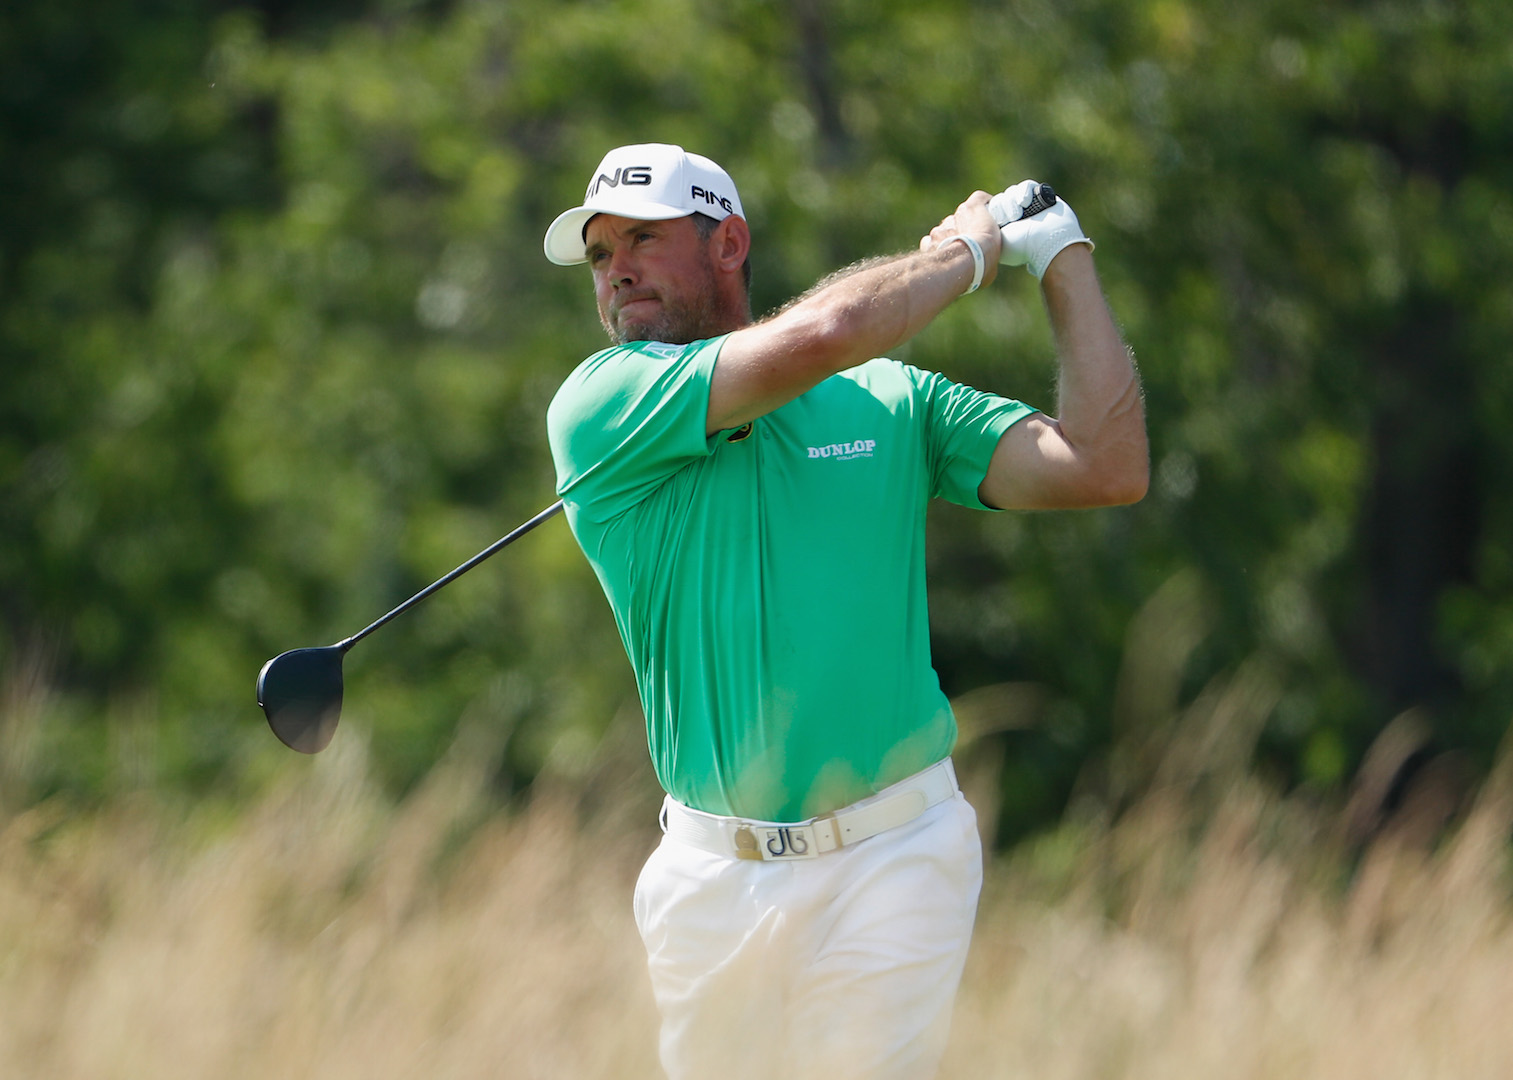 Dunlop give Lee Westwood £2 million reasons to sign up